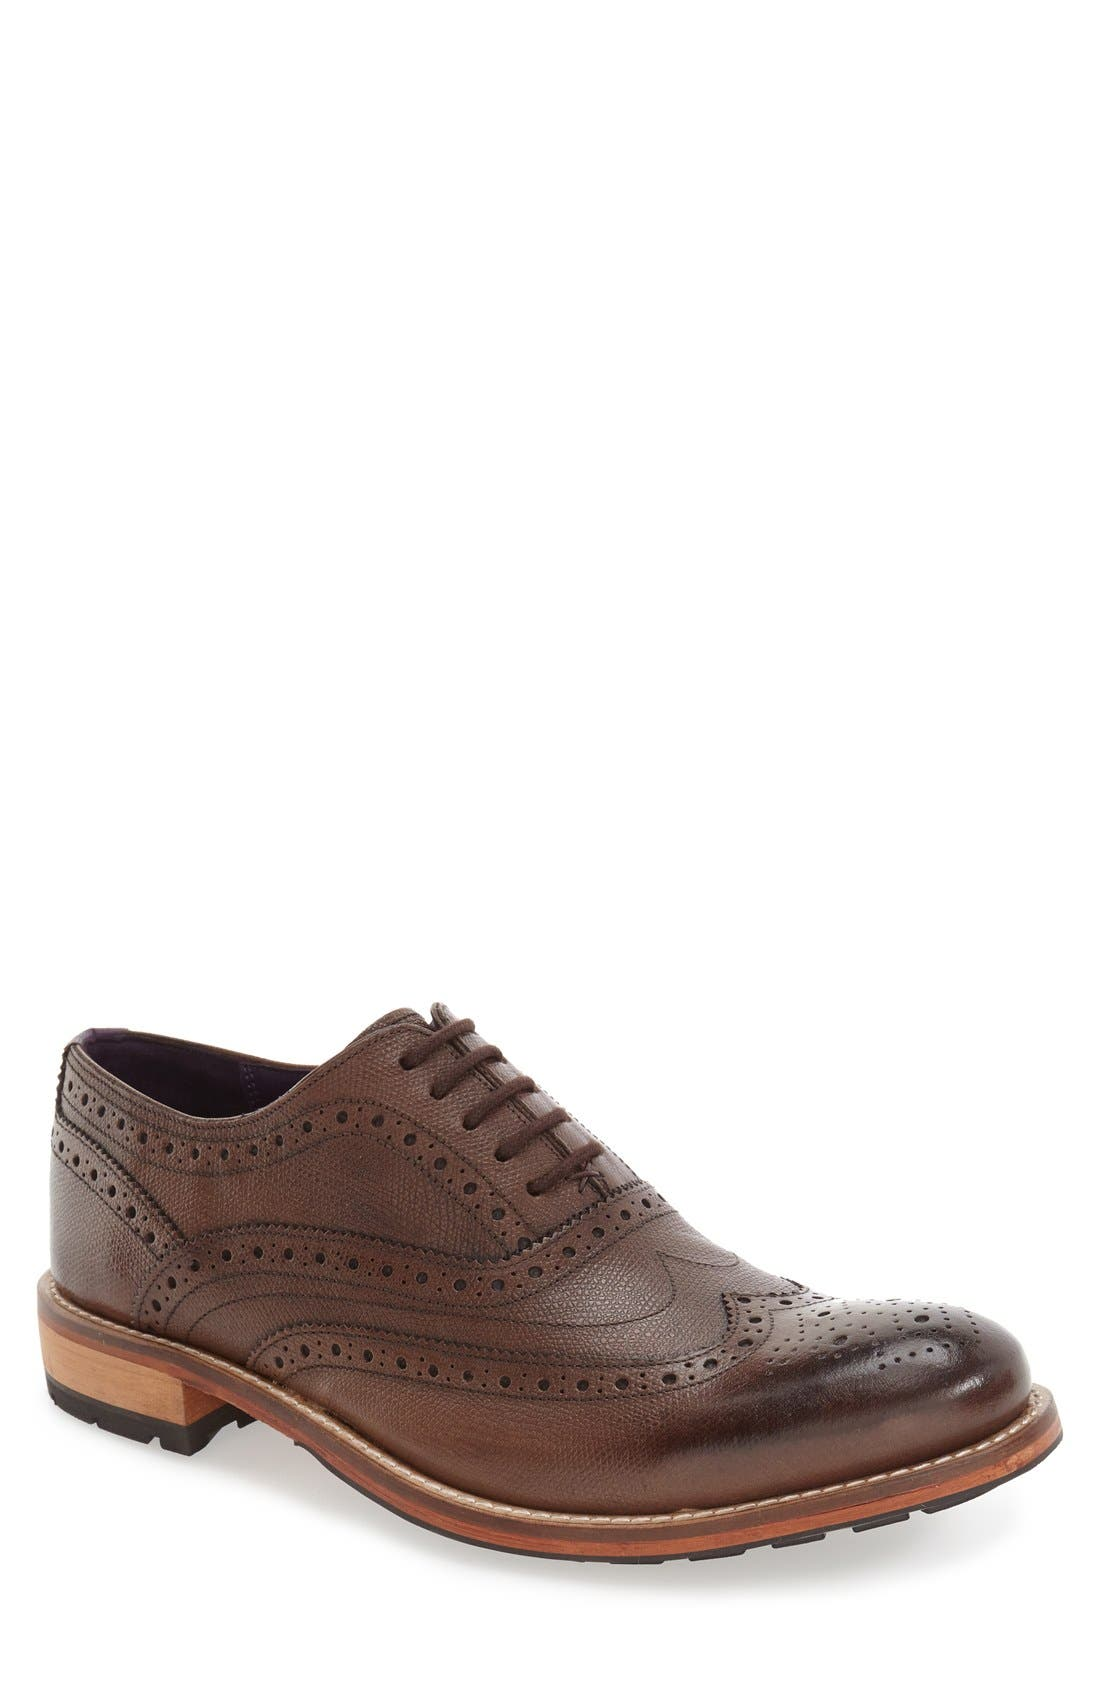 Alternate Image 1 Selected - Ted Baker London 'Guri 8' Wingtip (Men)